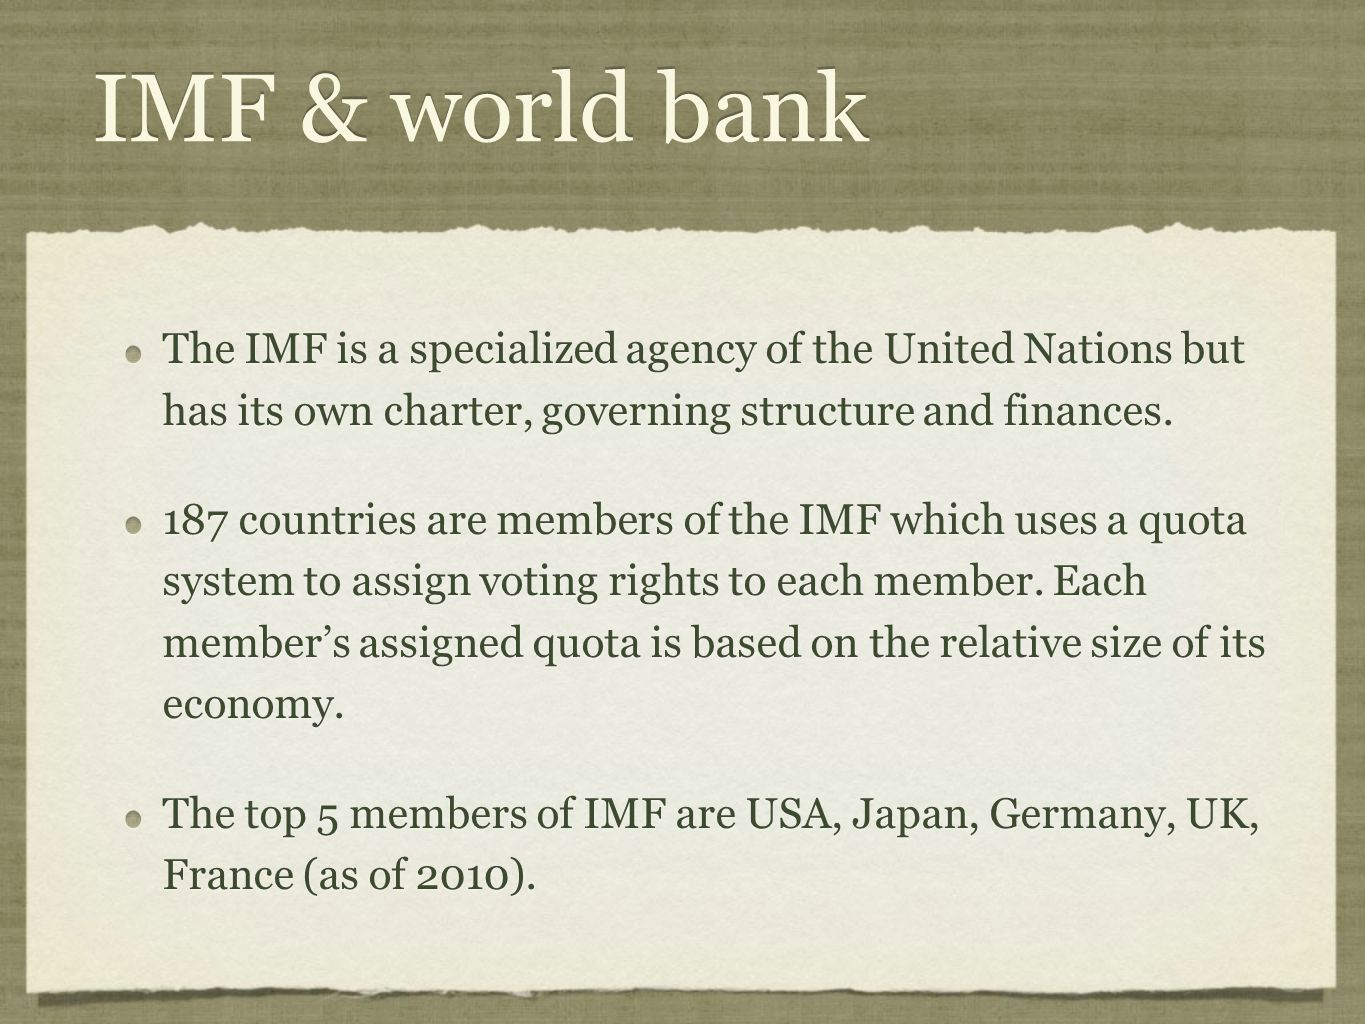 IMF & world bank The IMF is a specialized agency of the United Nations but has its own charter, governing structure and finances.